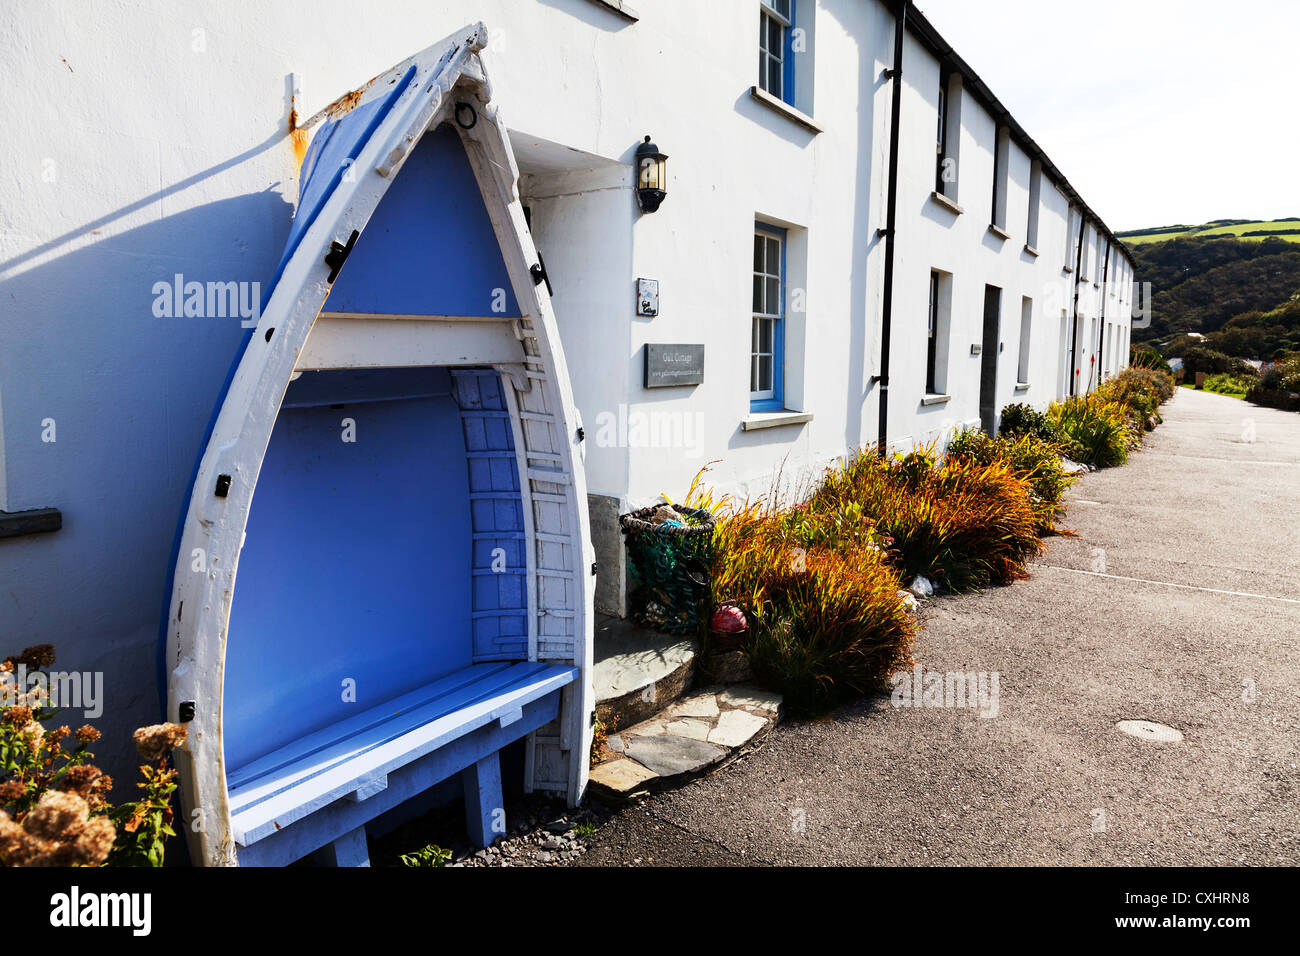 Interesting Boat Shaped Seat Bench Outside Home In Boscastle, Cornwall    Stock Image